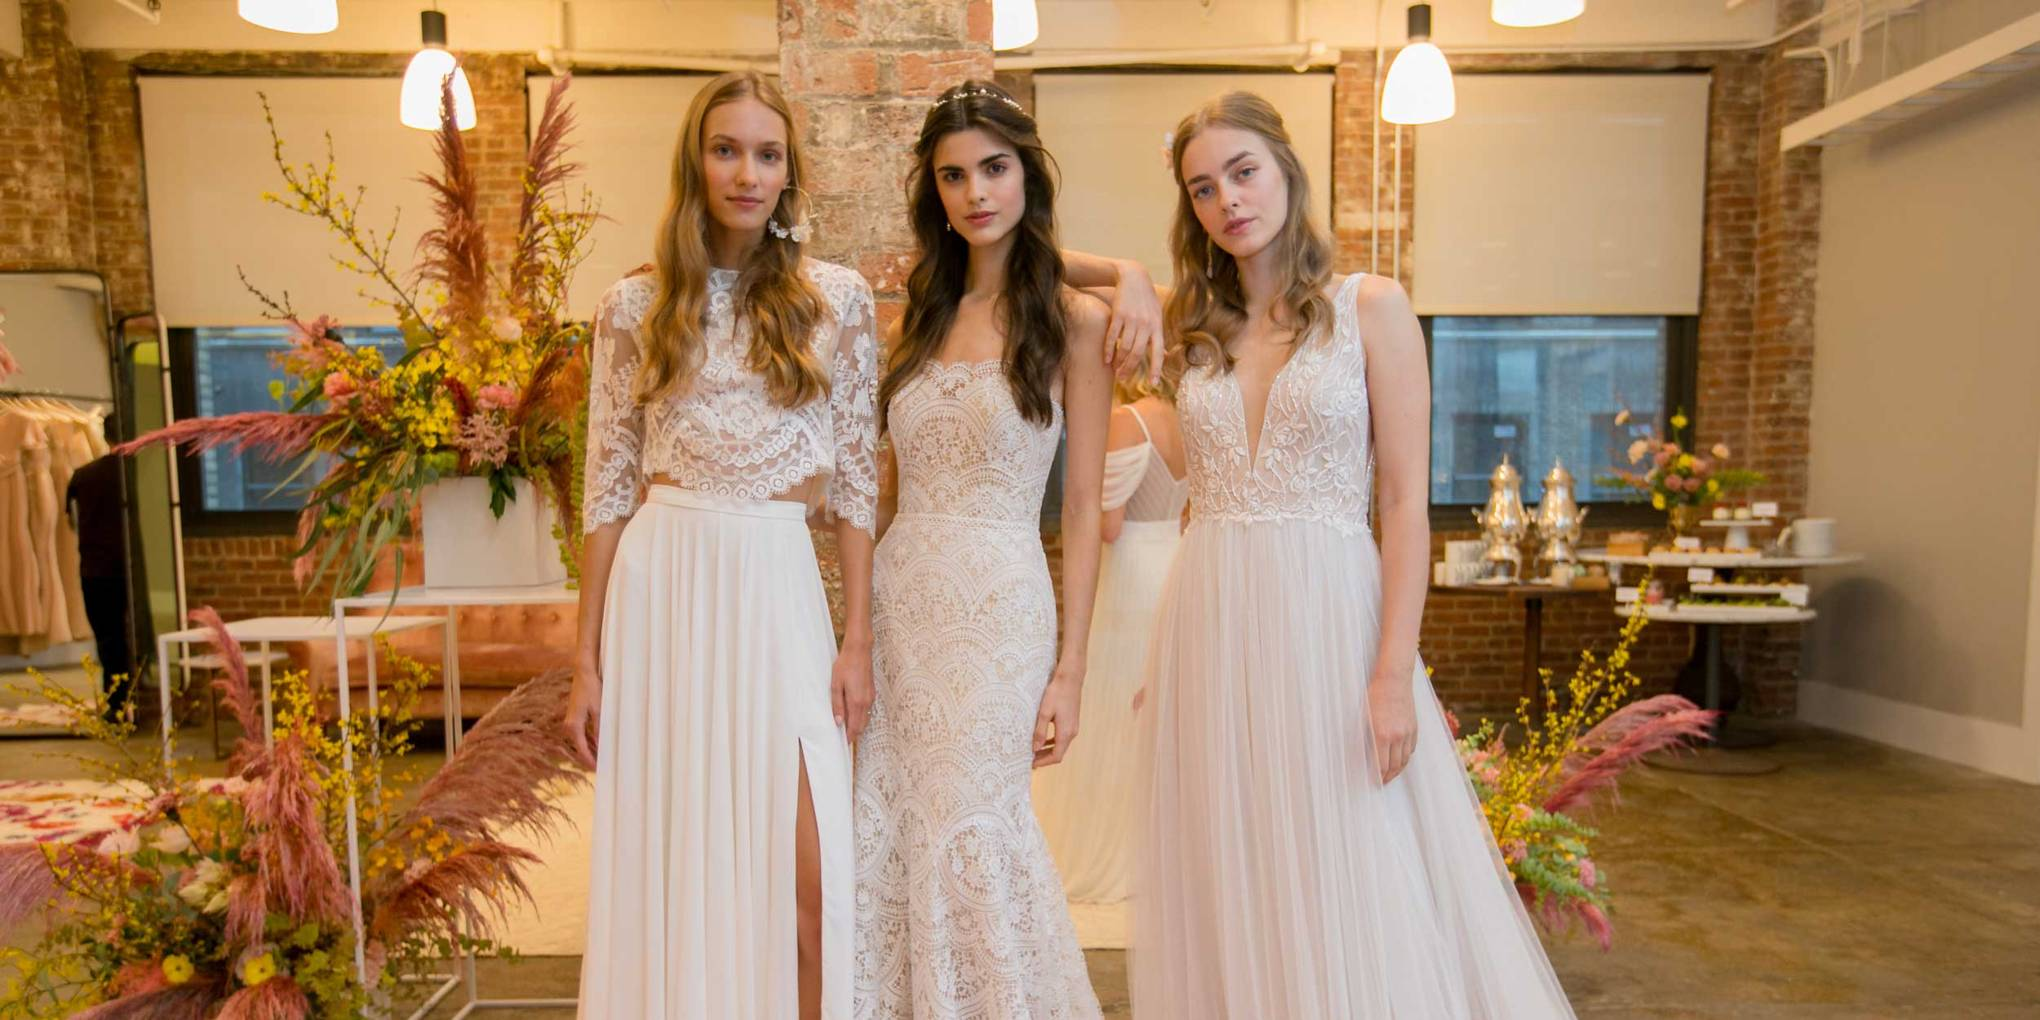 2019 Wedding Dress Trends To Know About Image